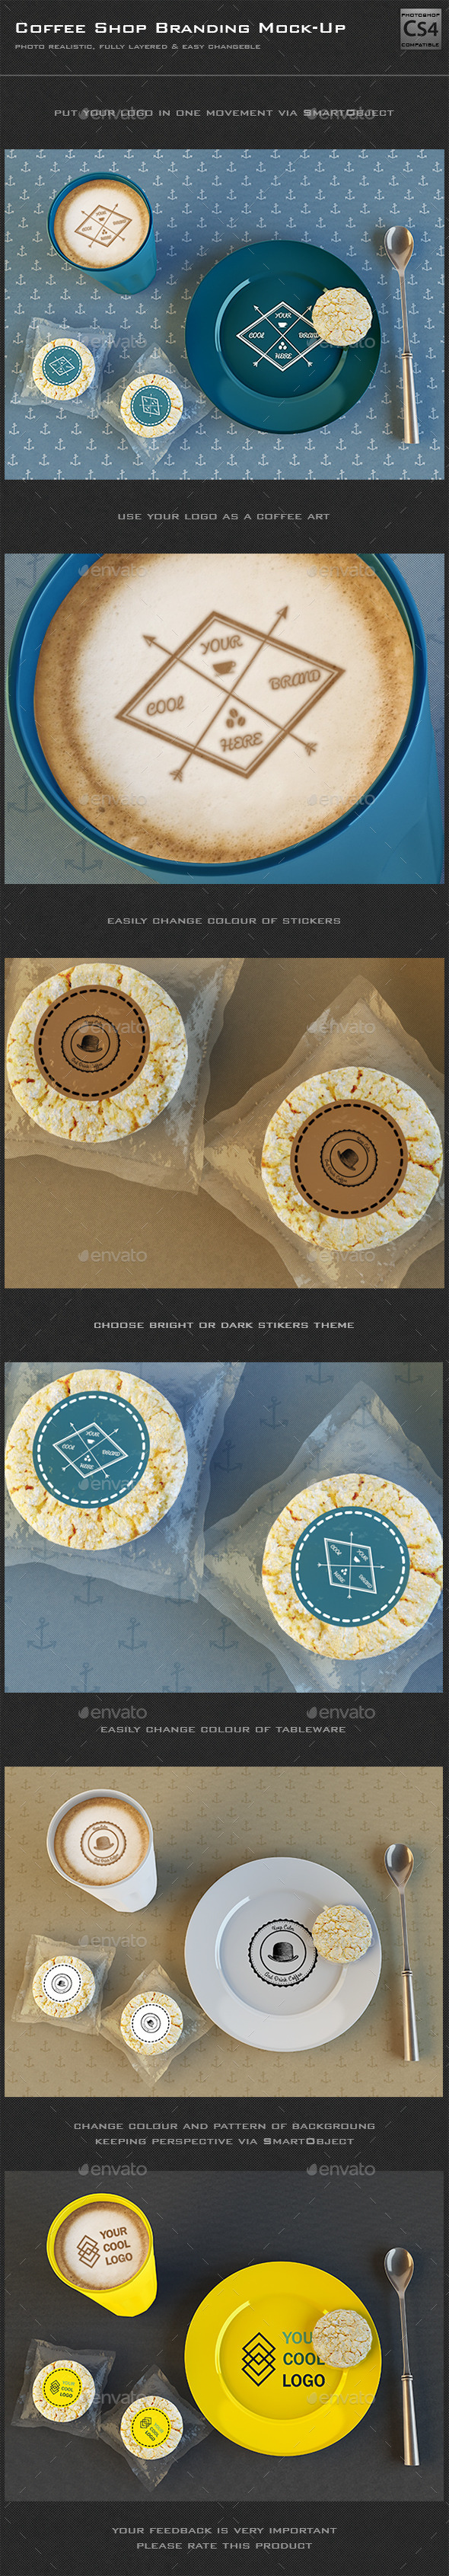 GraphicRiver Coffee Shop Branding Mock-Up 9994745